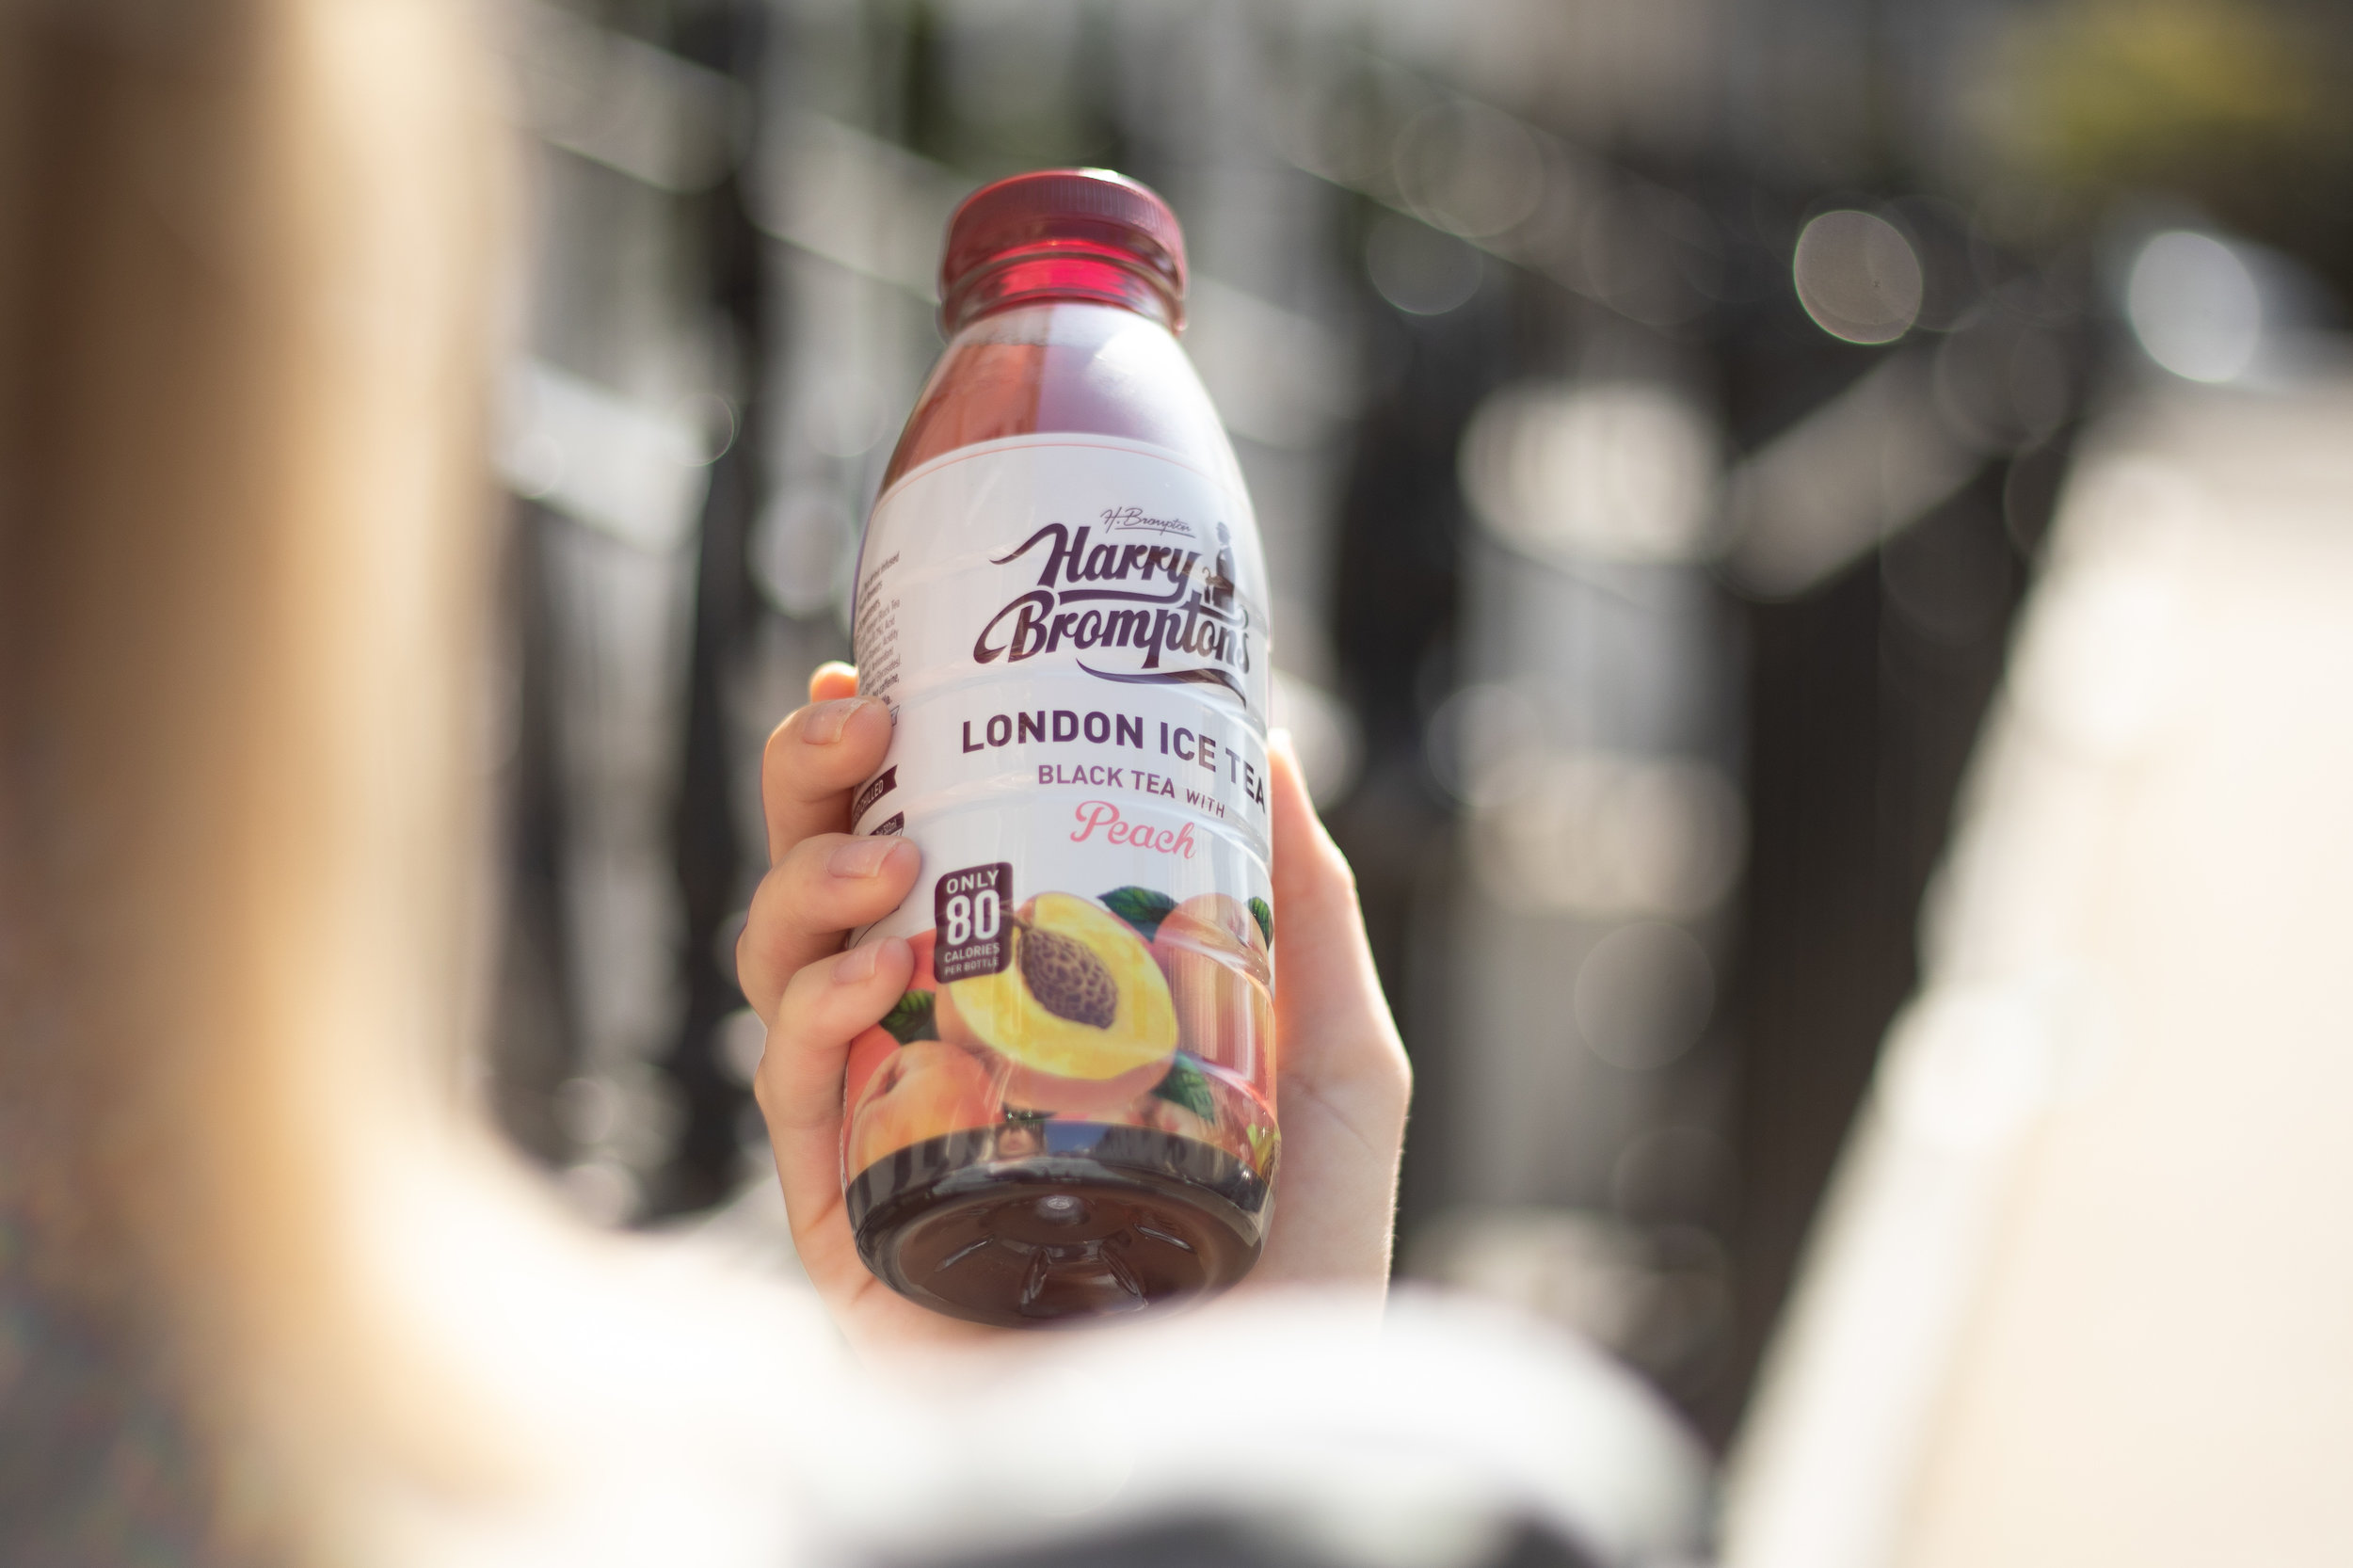 Harry Brompton'sLondon Ice TeaAll Natural. All Good! - We use the finest blend of Kenyan black tea infused with high quality fruits; the perfect way to enjoy naturally healthy refreshment on the go.